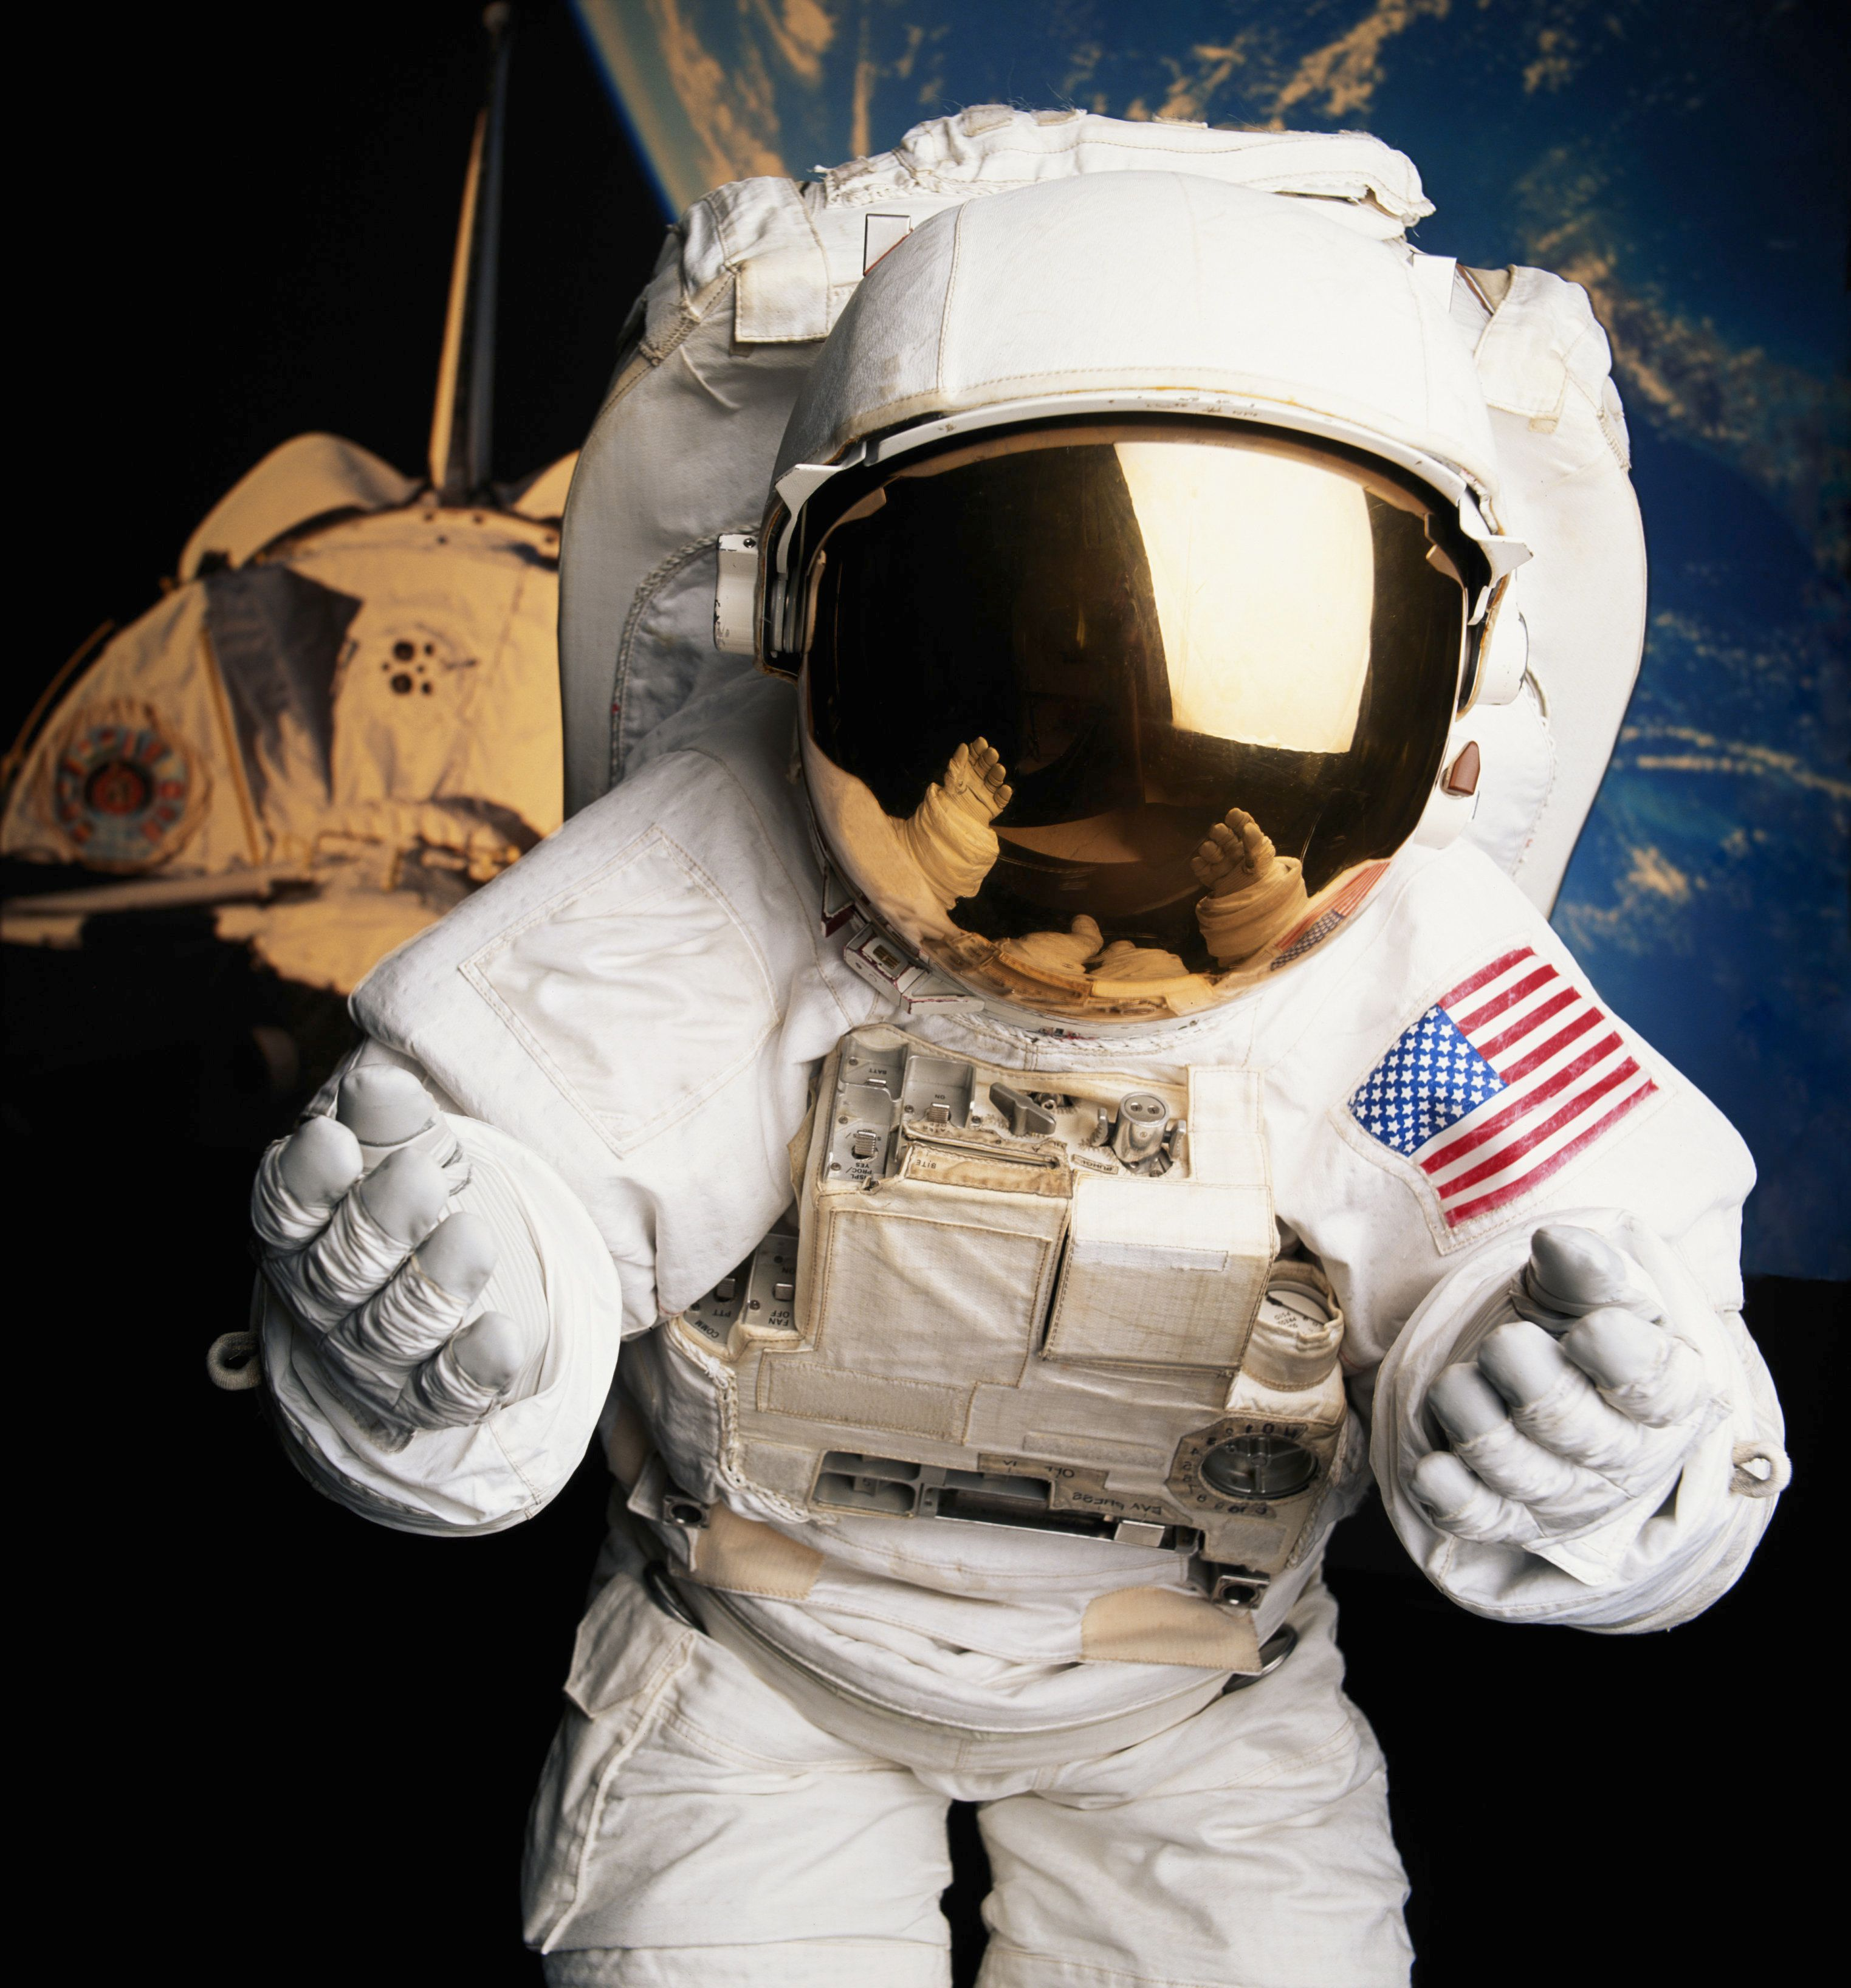 Astronaut in front of space shuttle and planet Earth